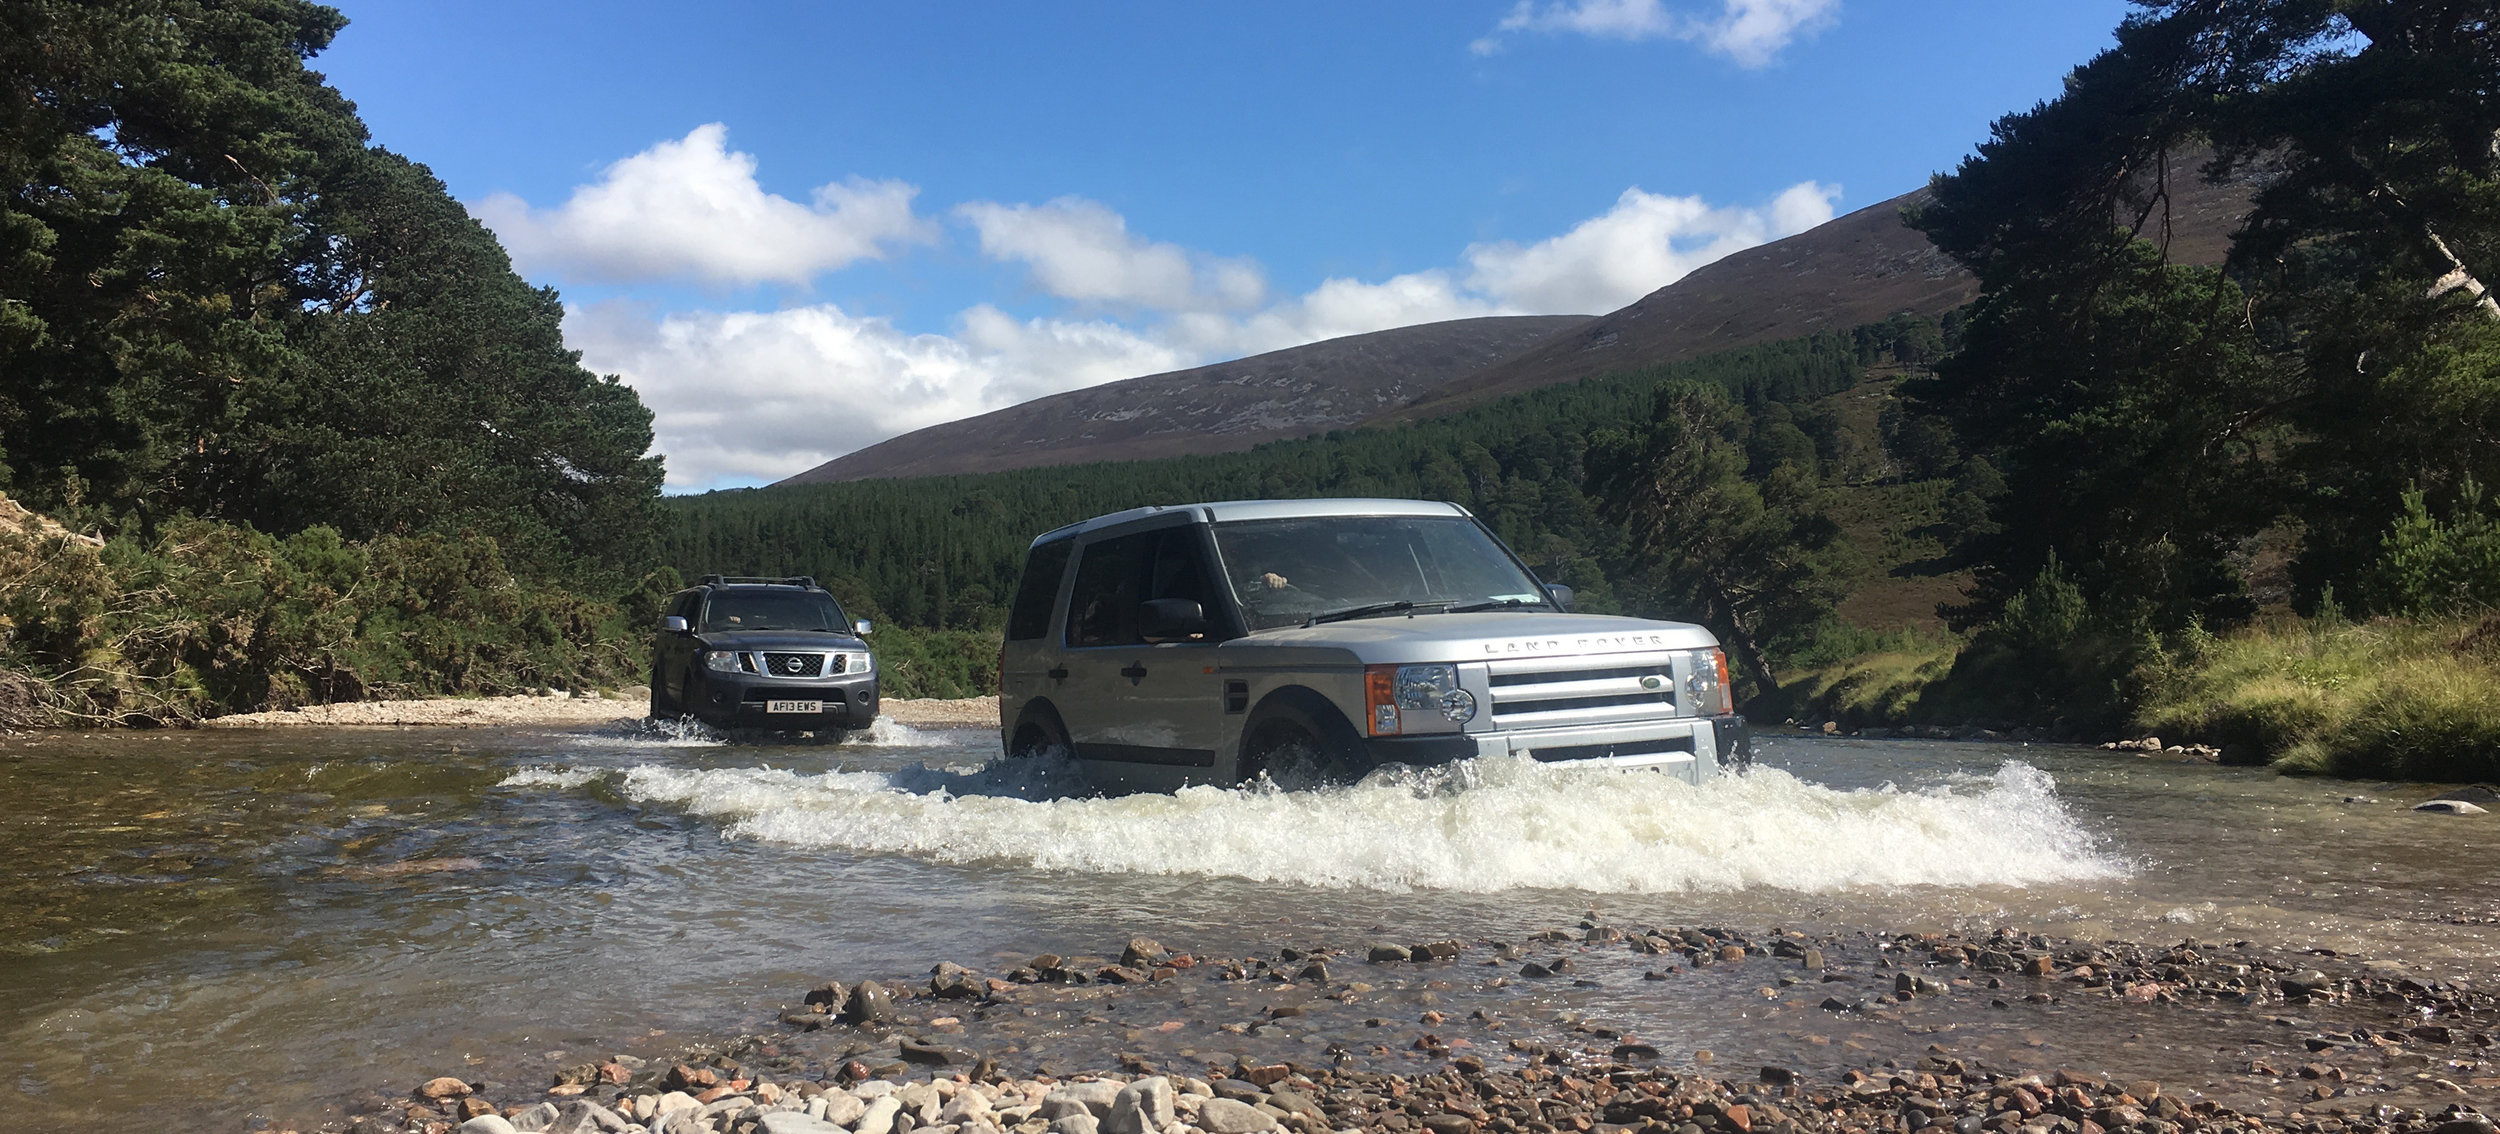 We had quite a few land rovers and they were needed:)